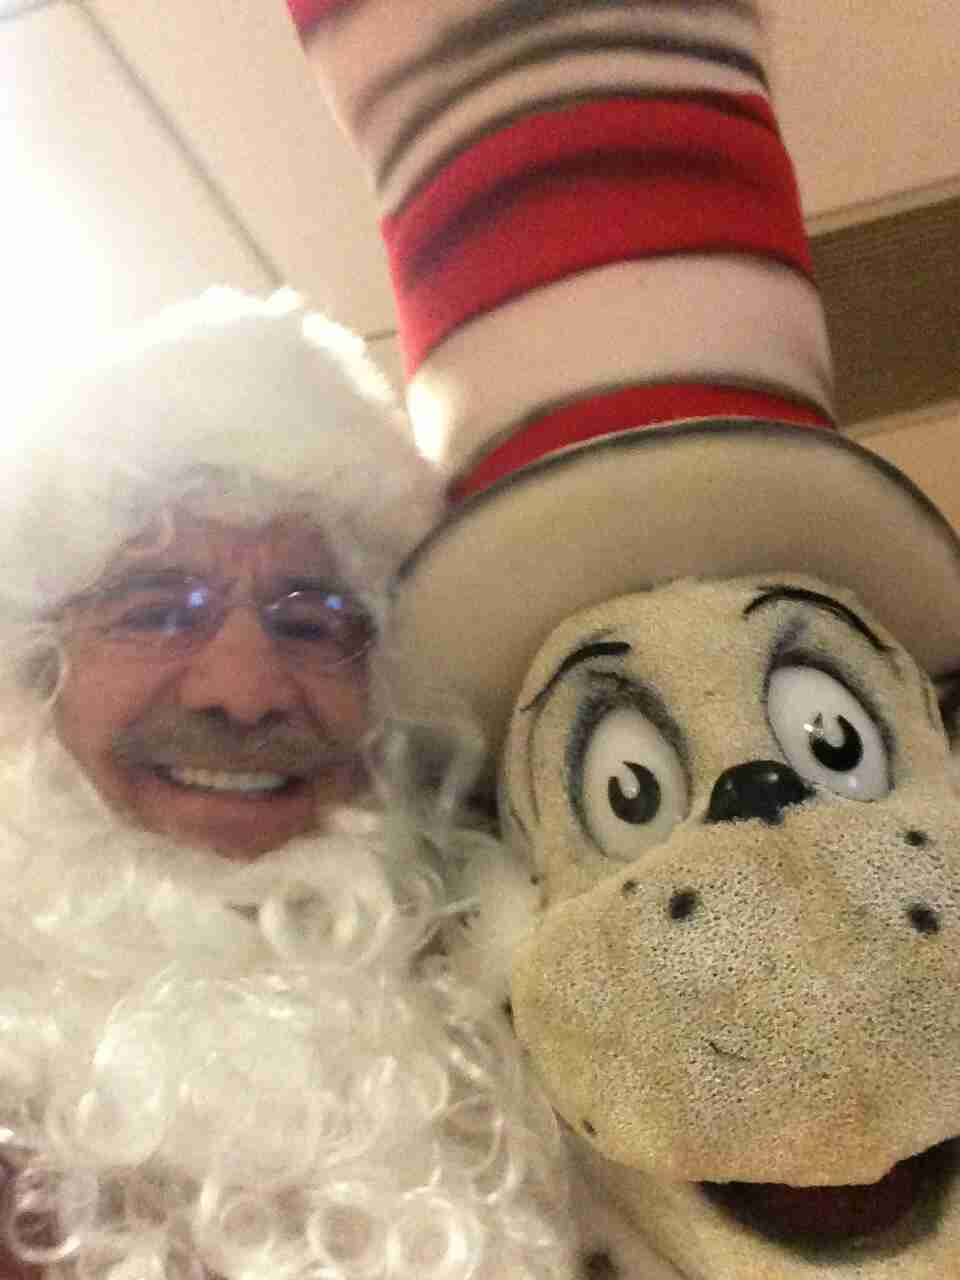 Geraldo poses with The Cat In The Hat.